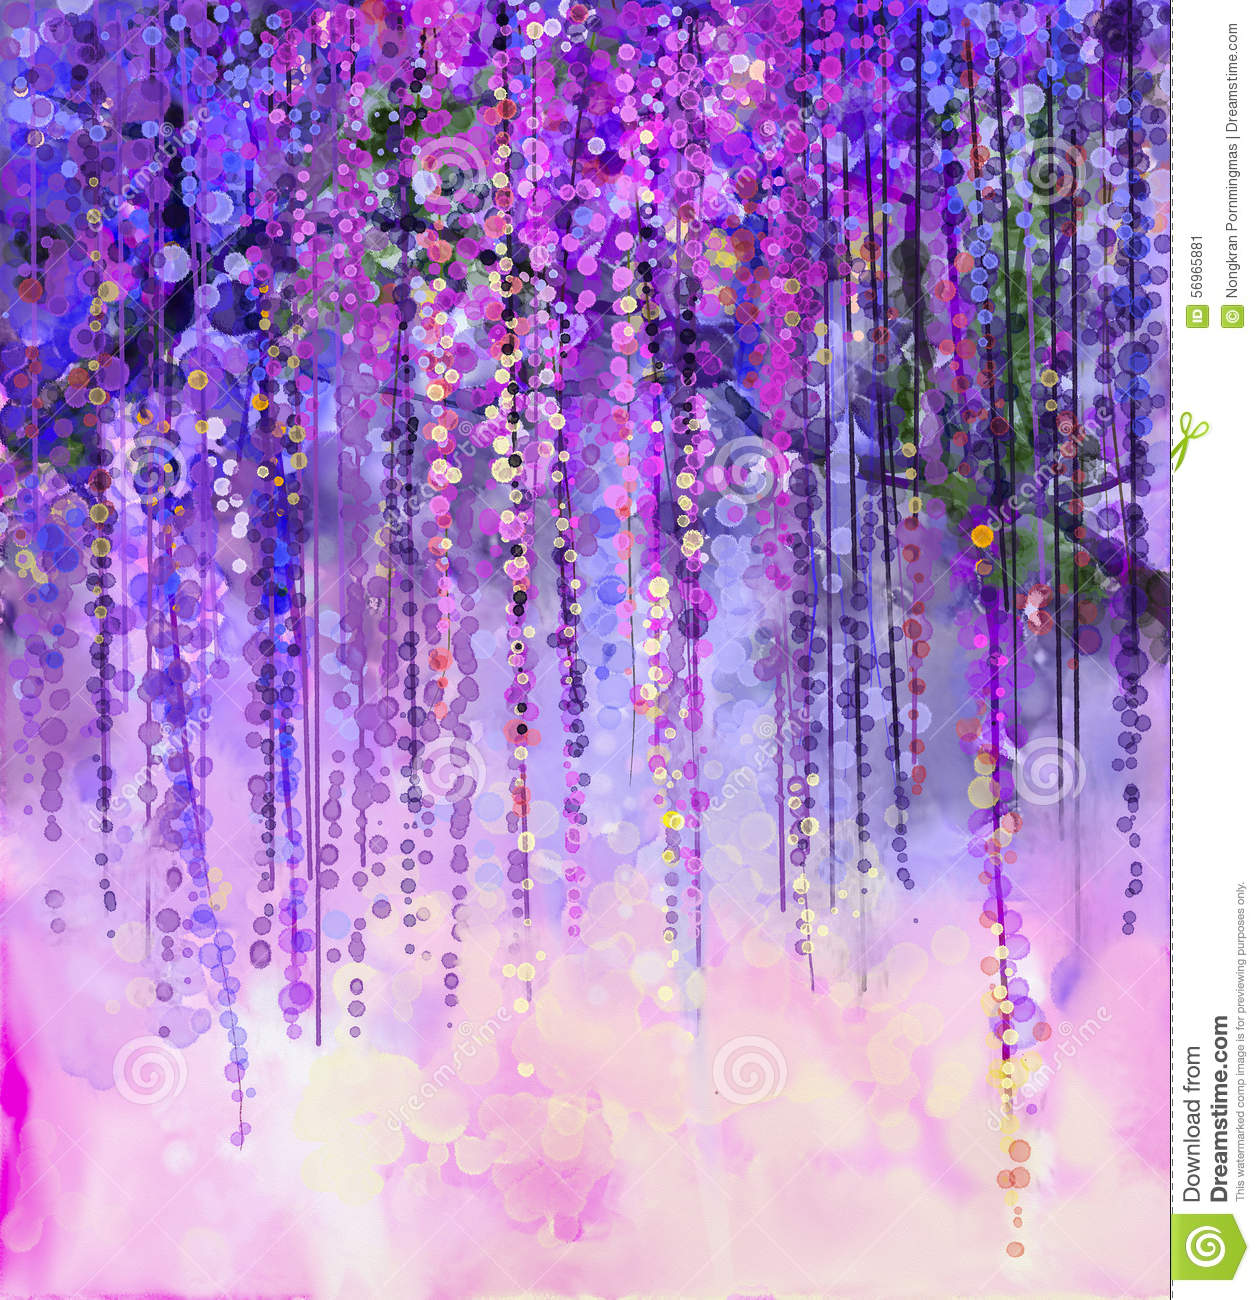 Spring purple flowers wisteriawatercolor painting stock abstract violet red and yellow color flowers watercolor painting spring purple flowers wisteria in blossom with bokeh background mightylinksfo